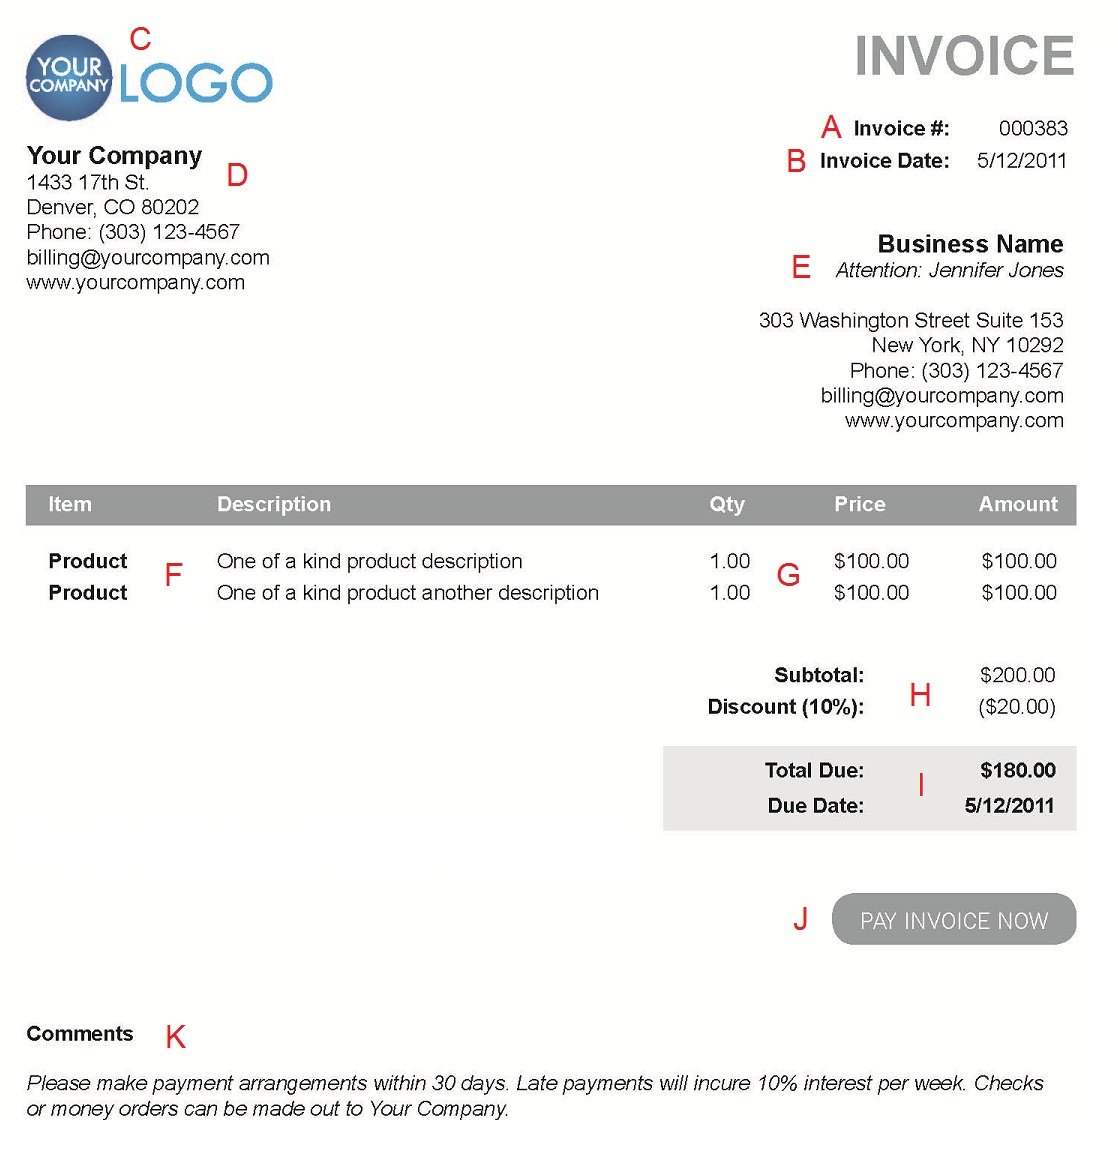 Musclebuildingtipsus  Ravishing The  Different Sections Of An Electronic Payment Invoice With Inspiring A  With Cool Template Invoice Uk Also Different Types Of Invoices In Addition Drupal Invoice And Landscaping Invoice Software As Well As Sage Email Invoices Additionally Tax Invoice Template Australia From Paysimplecom With Musclebuildingtipsus  Inspiring The  Different Sections Of An Electronic Payment Invoice With Cool A  And Ravishing Template Invoice Uk Also Different Types Of Invoices In Addition Drupal Invoice From Paysimplecom